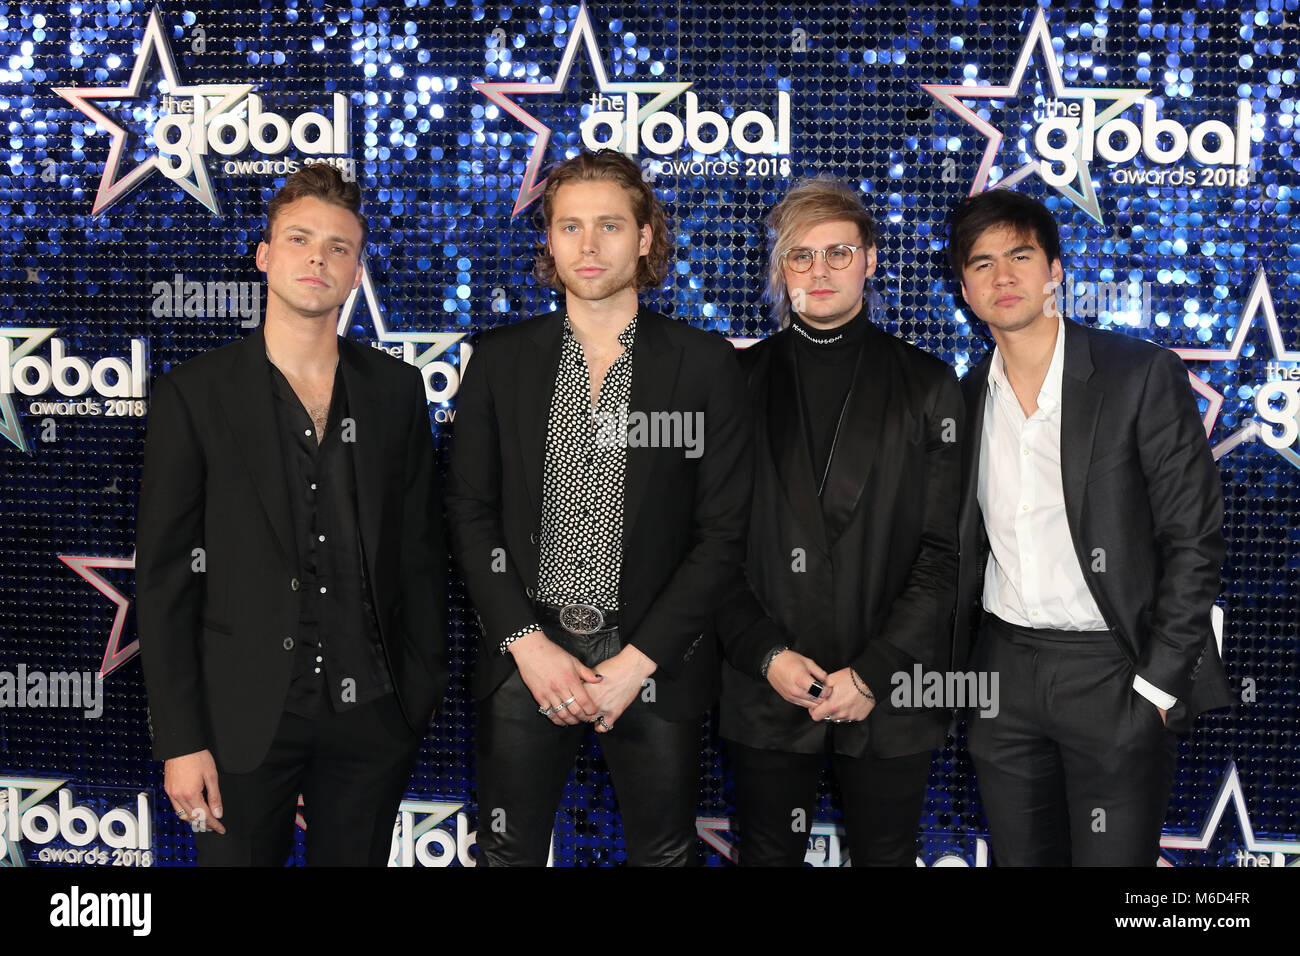 5 Seconds Of Summer Arrives At The Global Awards Eventim Apollo London Uk March 1st 2018 Credit Martin Evans Alamy Live News